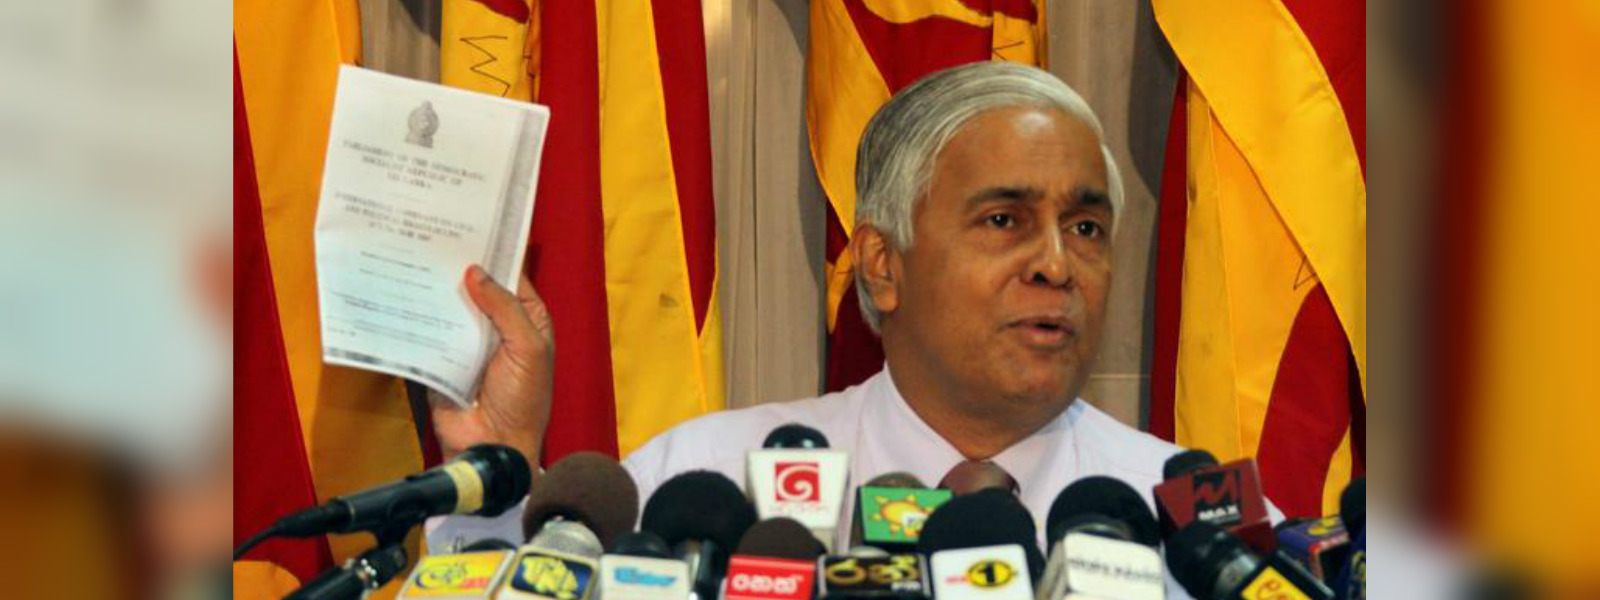 Notice issued on Former Chief Justice Sarath N. Silva